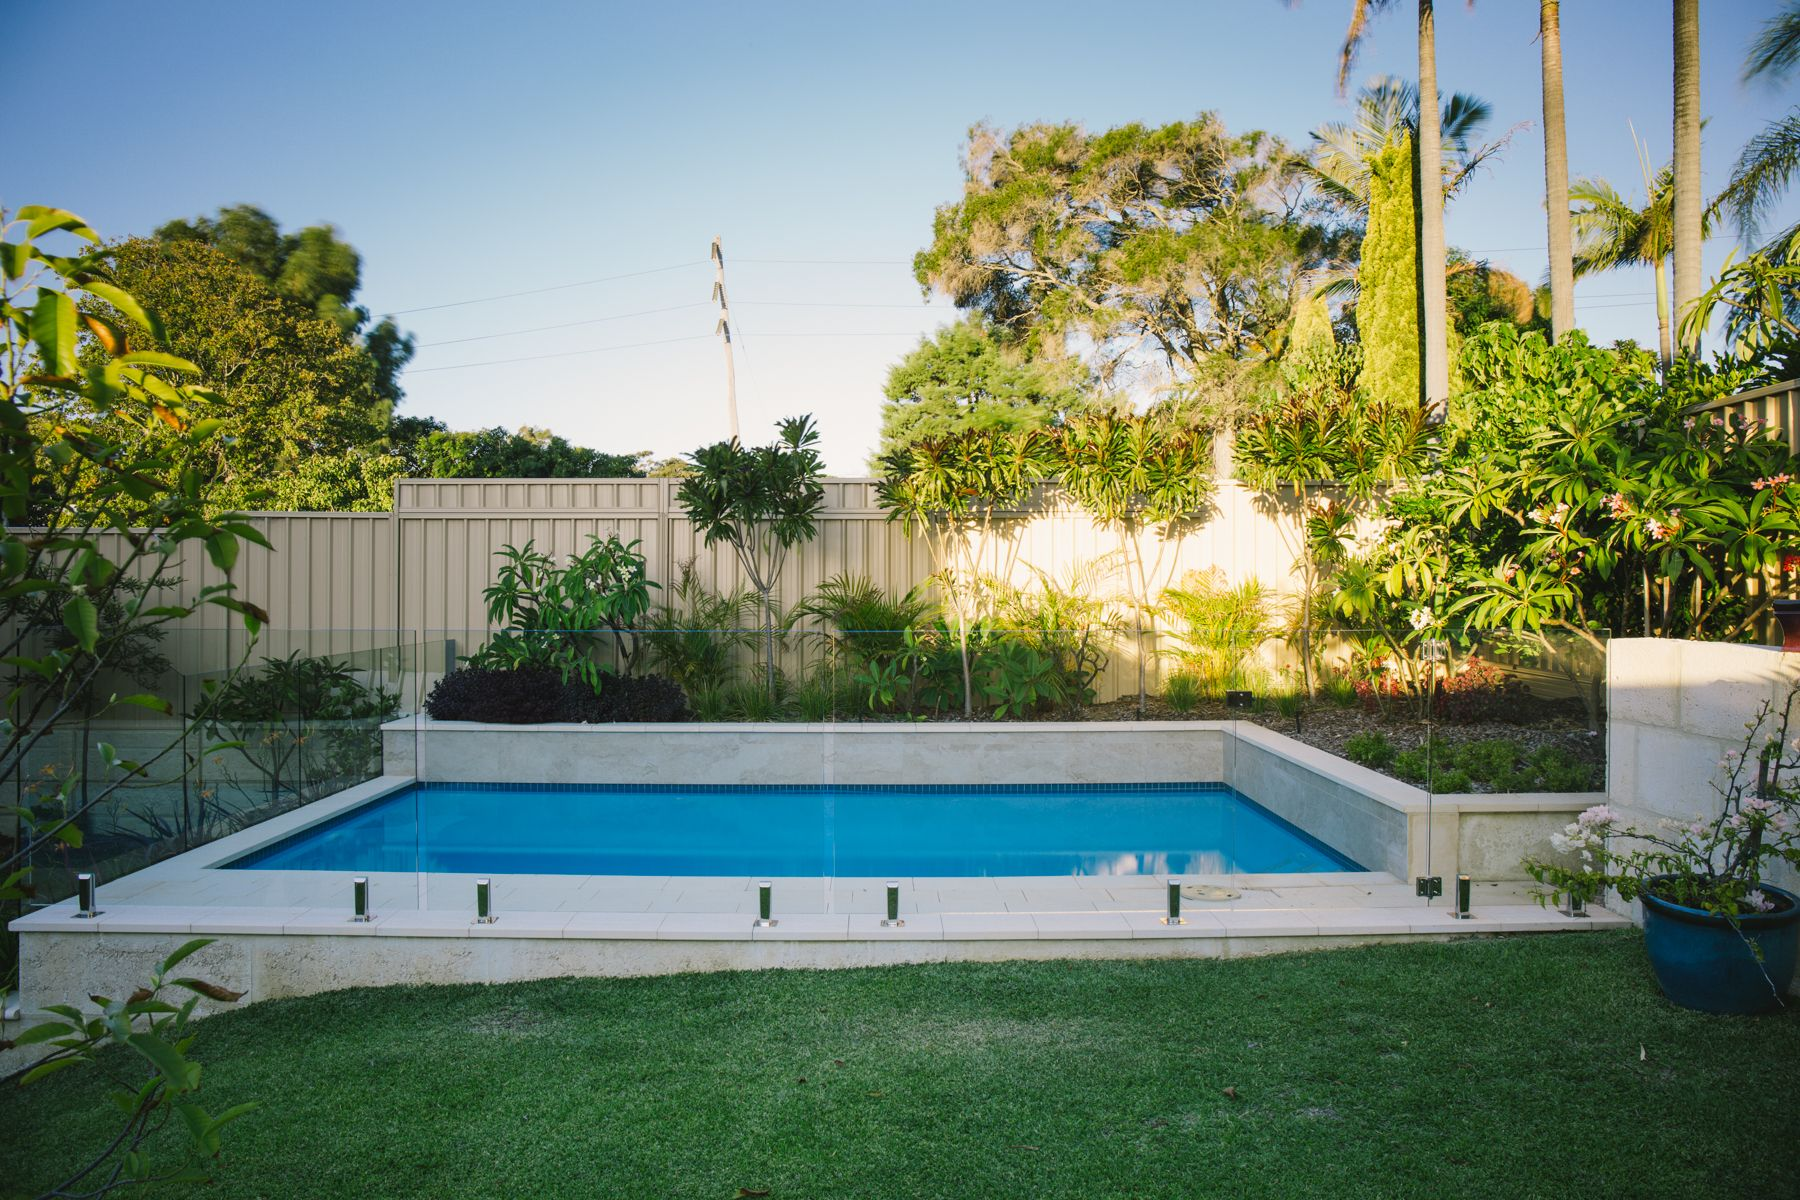 Concrete Pool Installed On A Sloped Backyard Tropical Landscaping To Accompany The Light Blue Pool Colour Pool Landscaping Pool Spa Pool